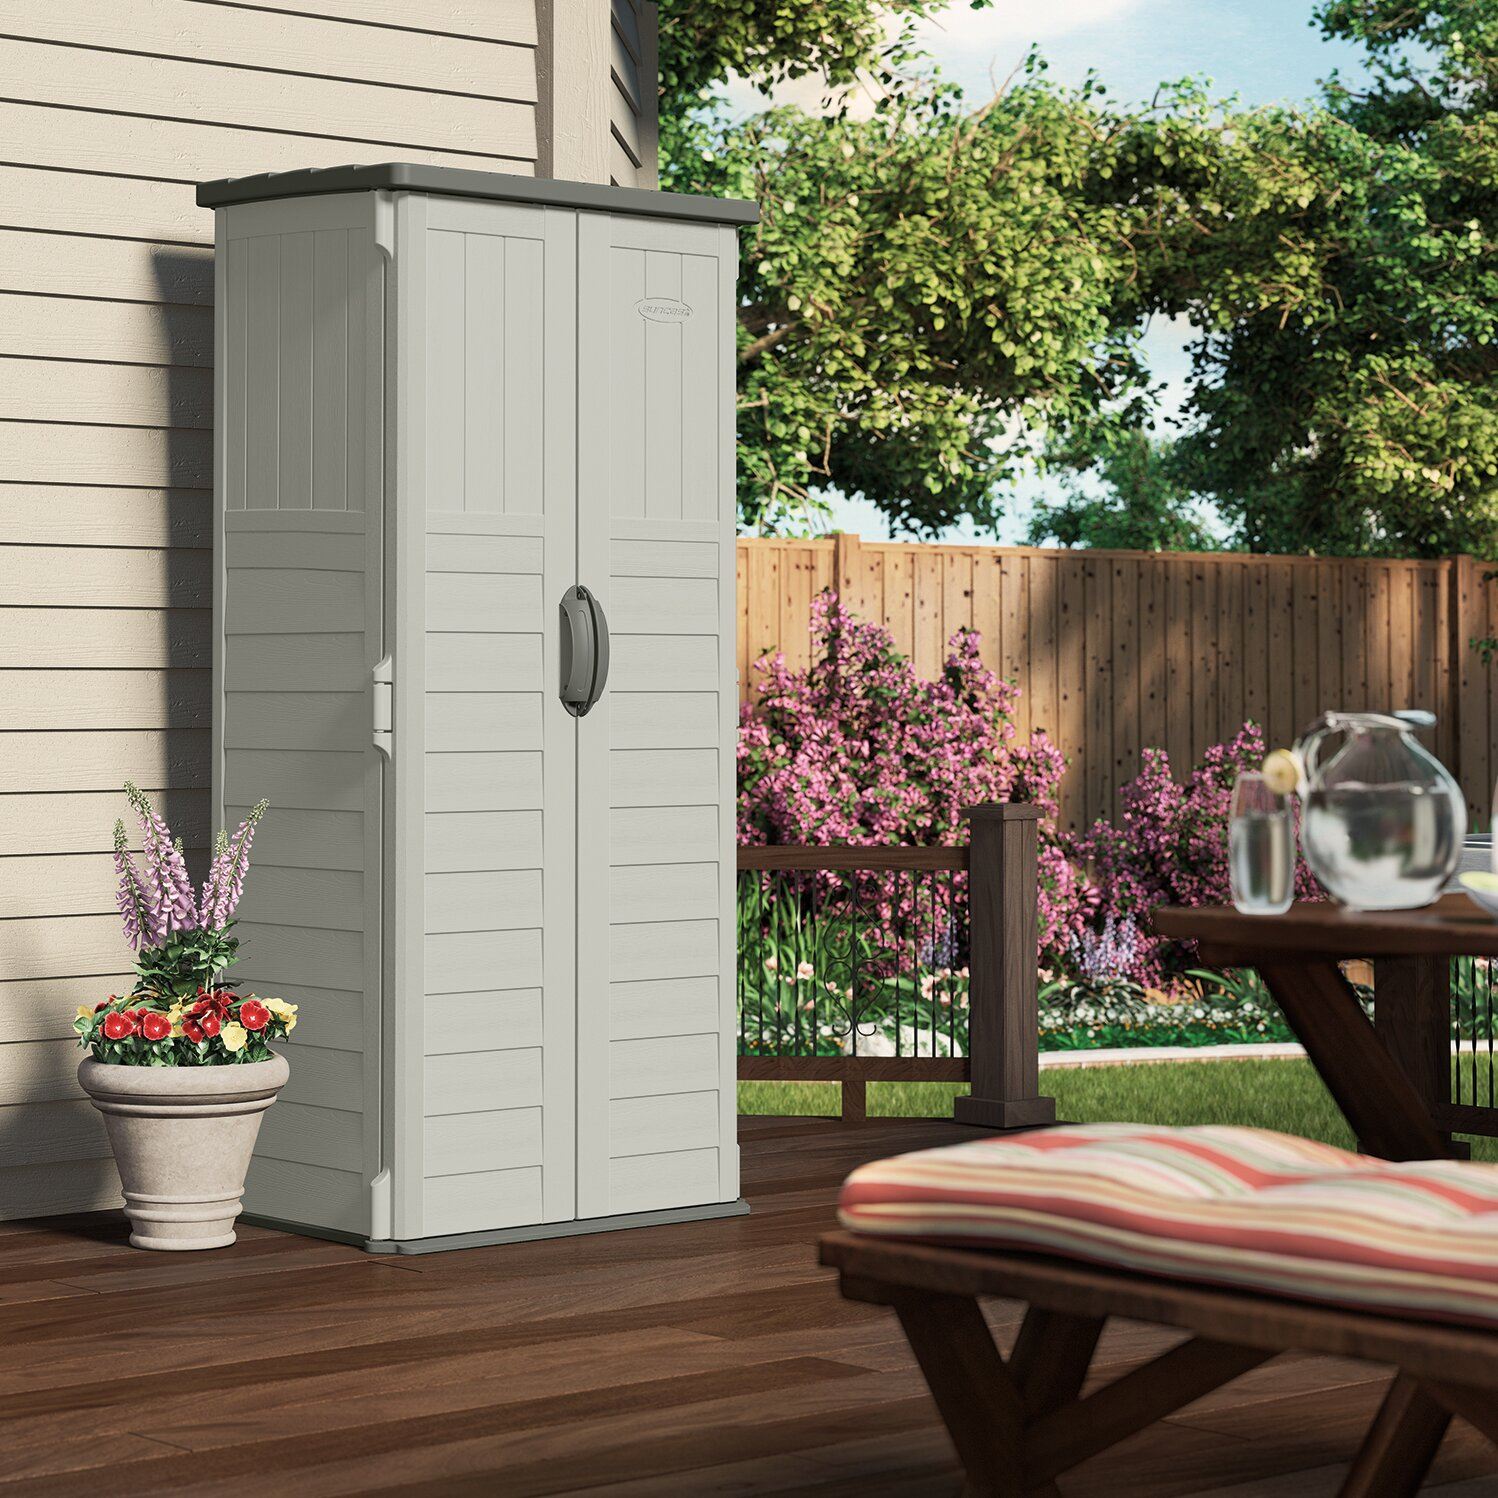 Suncast 2 7 ft w x 2 1 ft d plastic tool shed reviews for Backyard storage sheds for sale